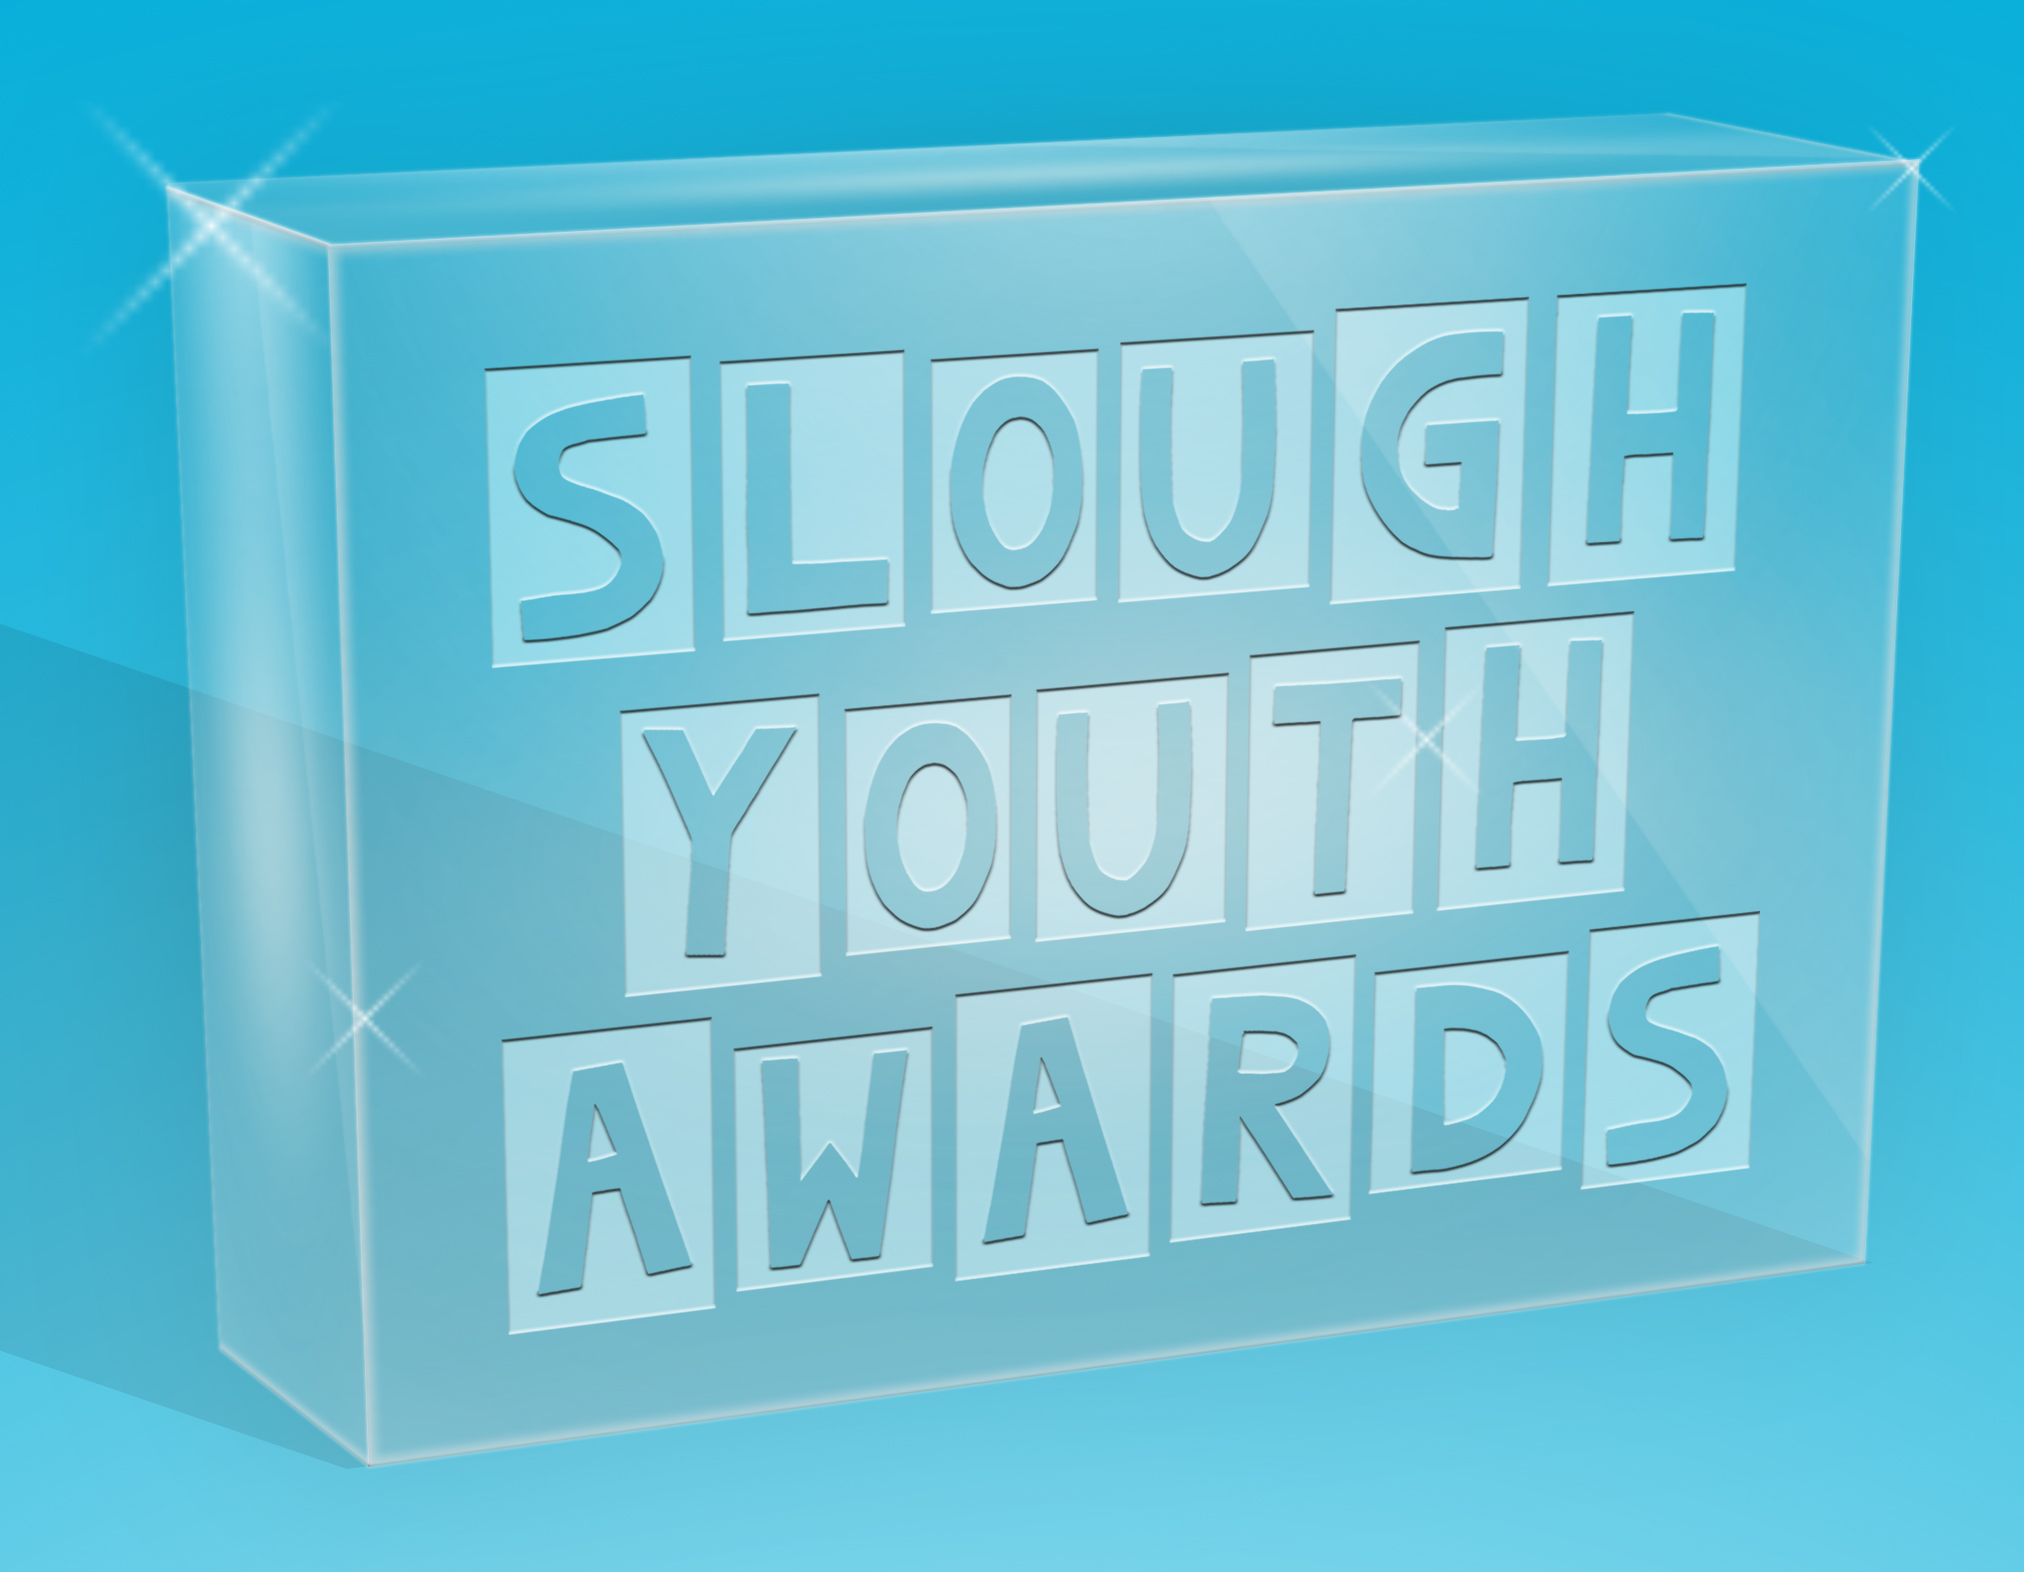 Youth Awards Logo